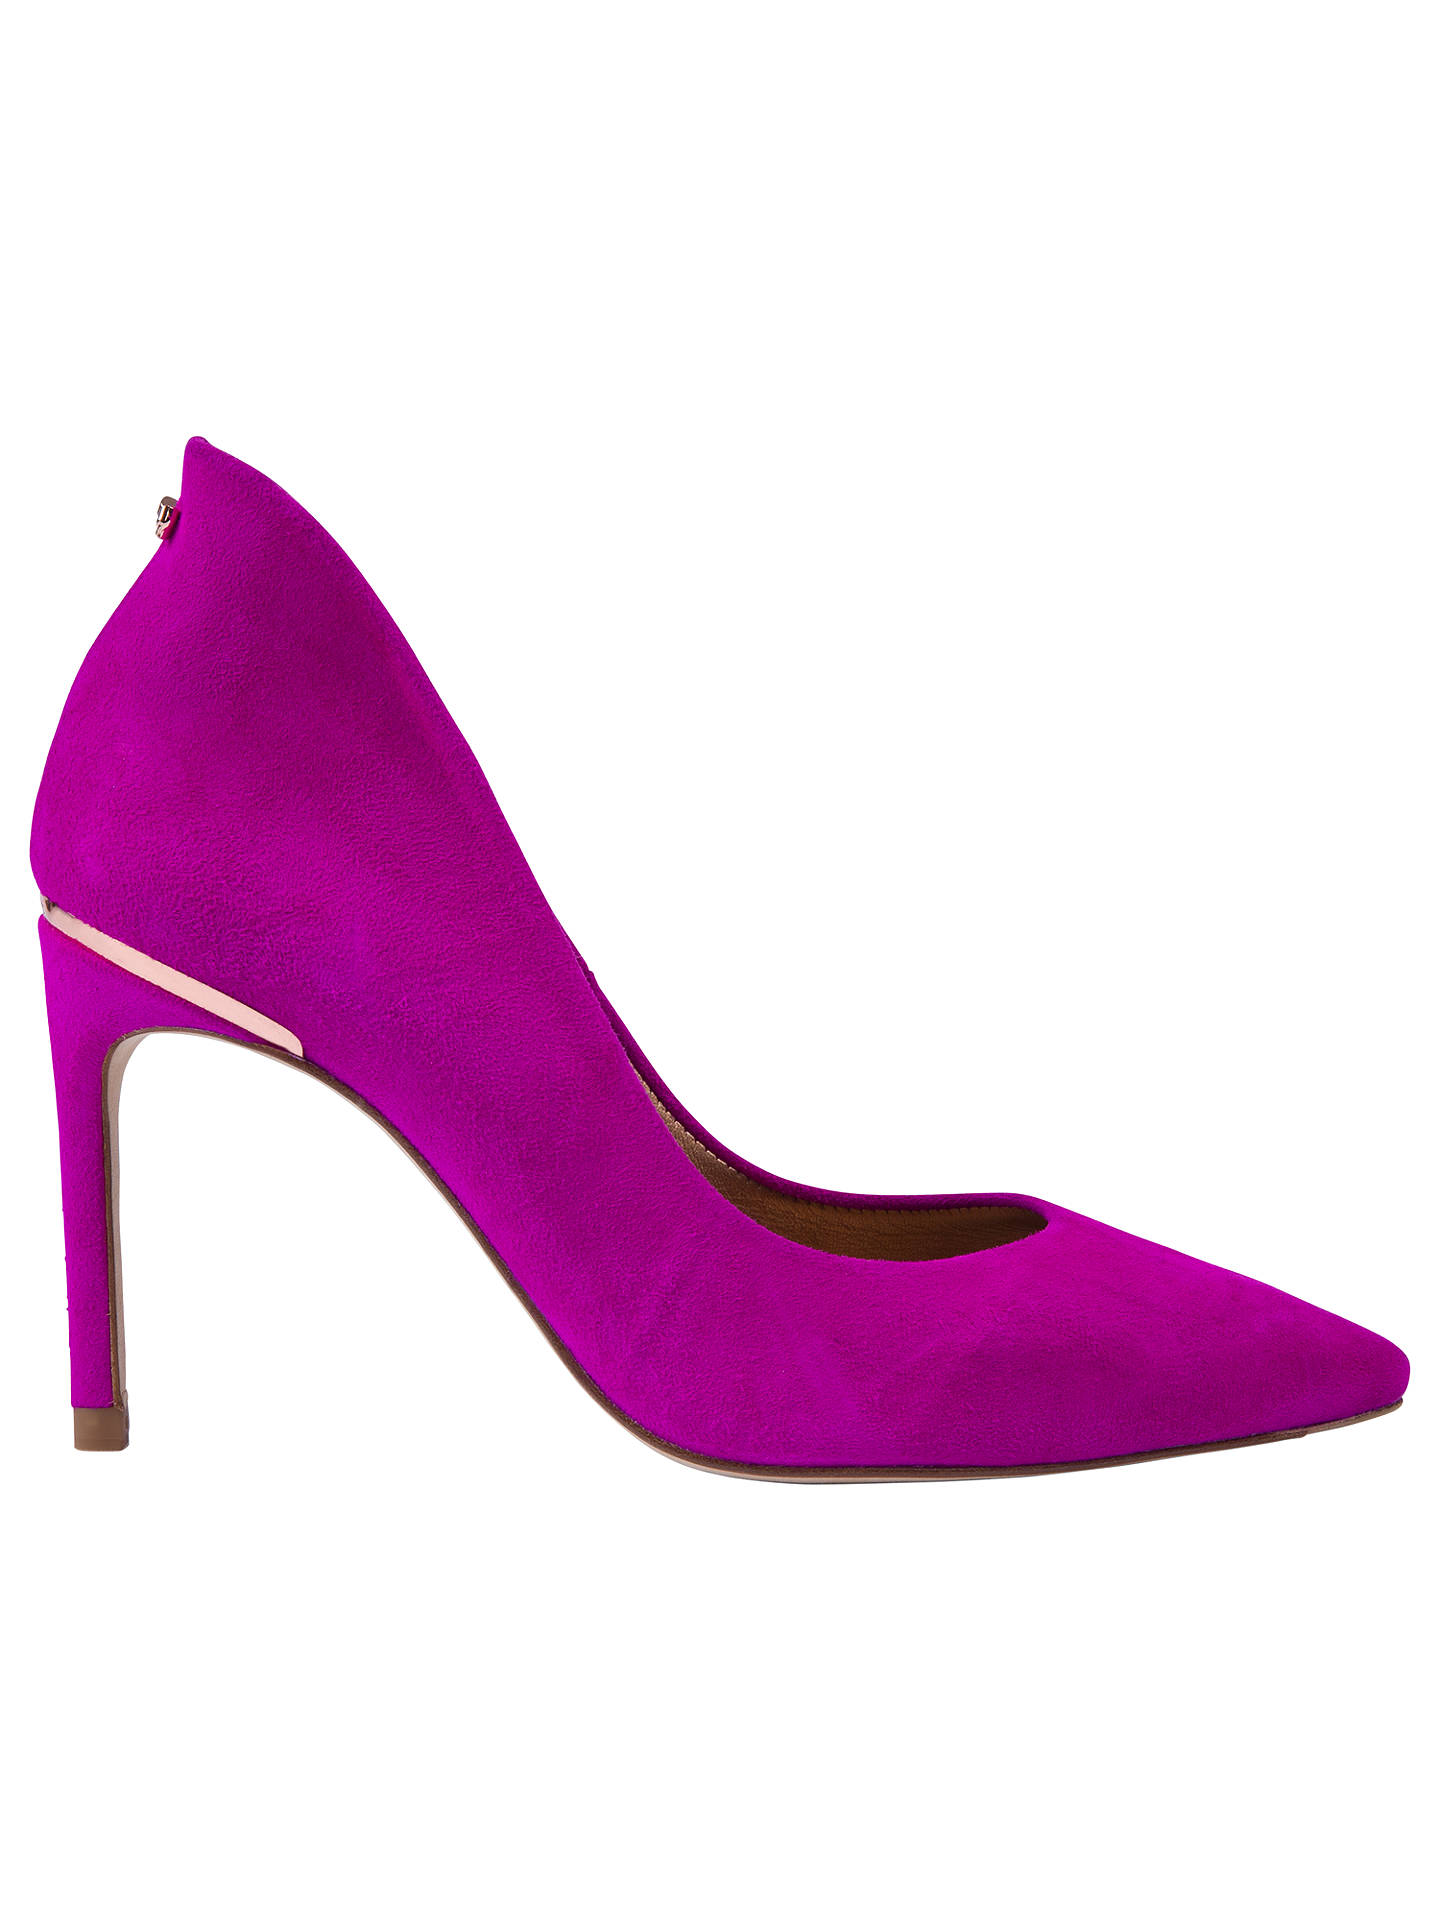 1136e8e176dfc4 Ted Baker Savio 2 Stiletto Heeled Court Shoes at John Lewis   Partners